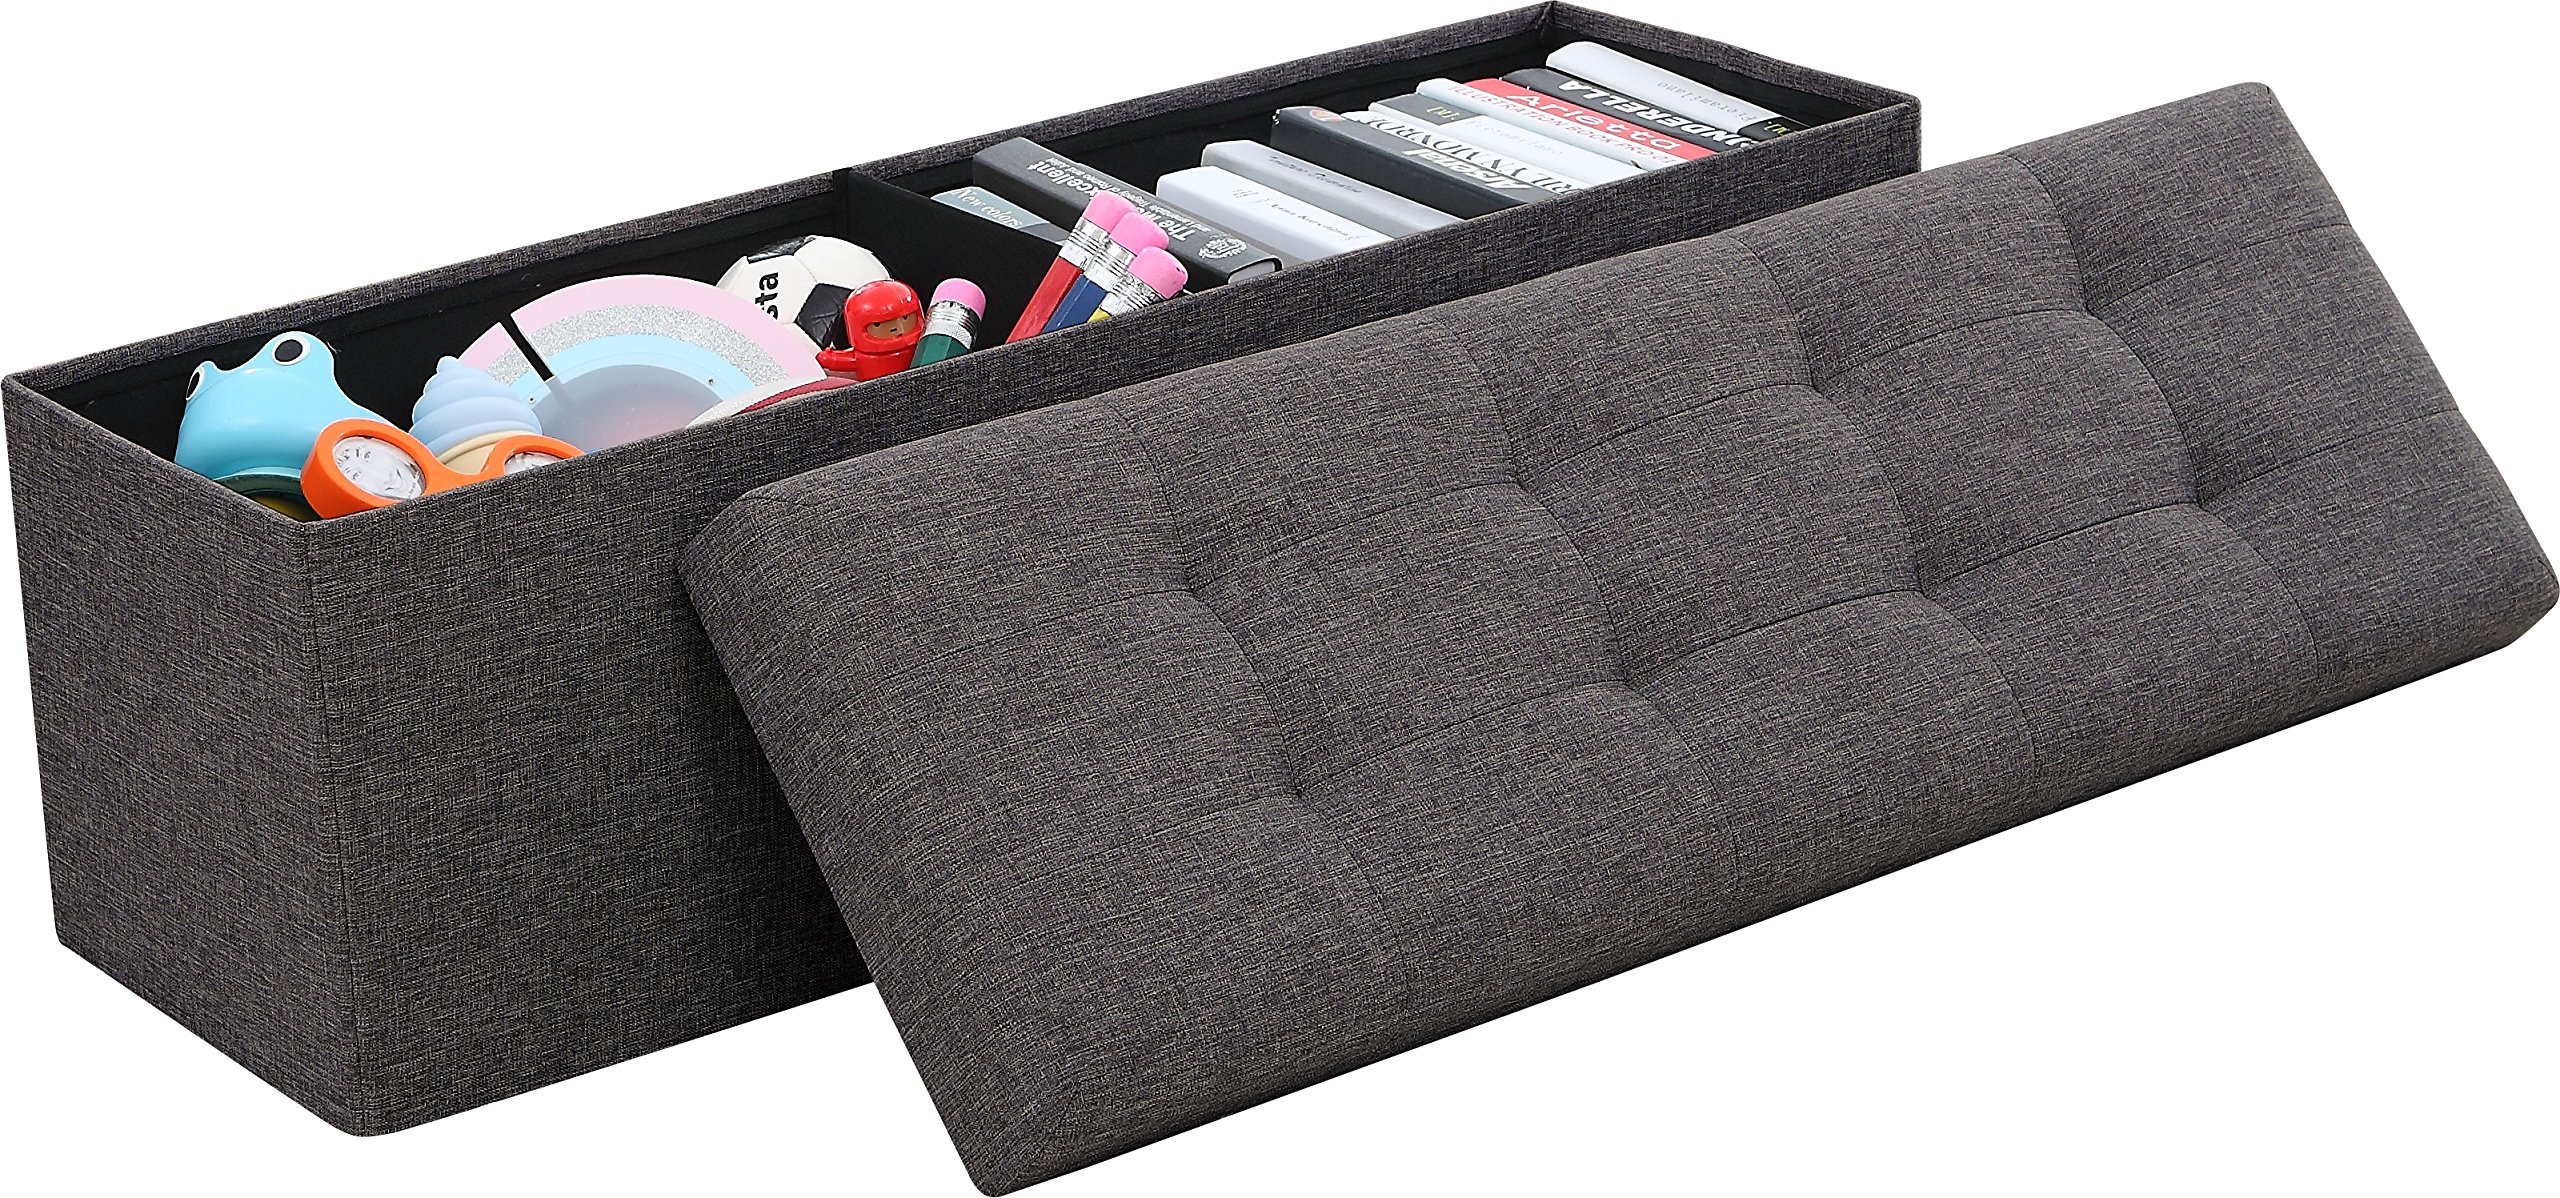 Ellington Home Foldable Tufted Linen Large Storage Ottoman Bench Foot Rest Stool/Seat - 15'' x 45'' x 15'' (Charcoal)